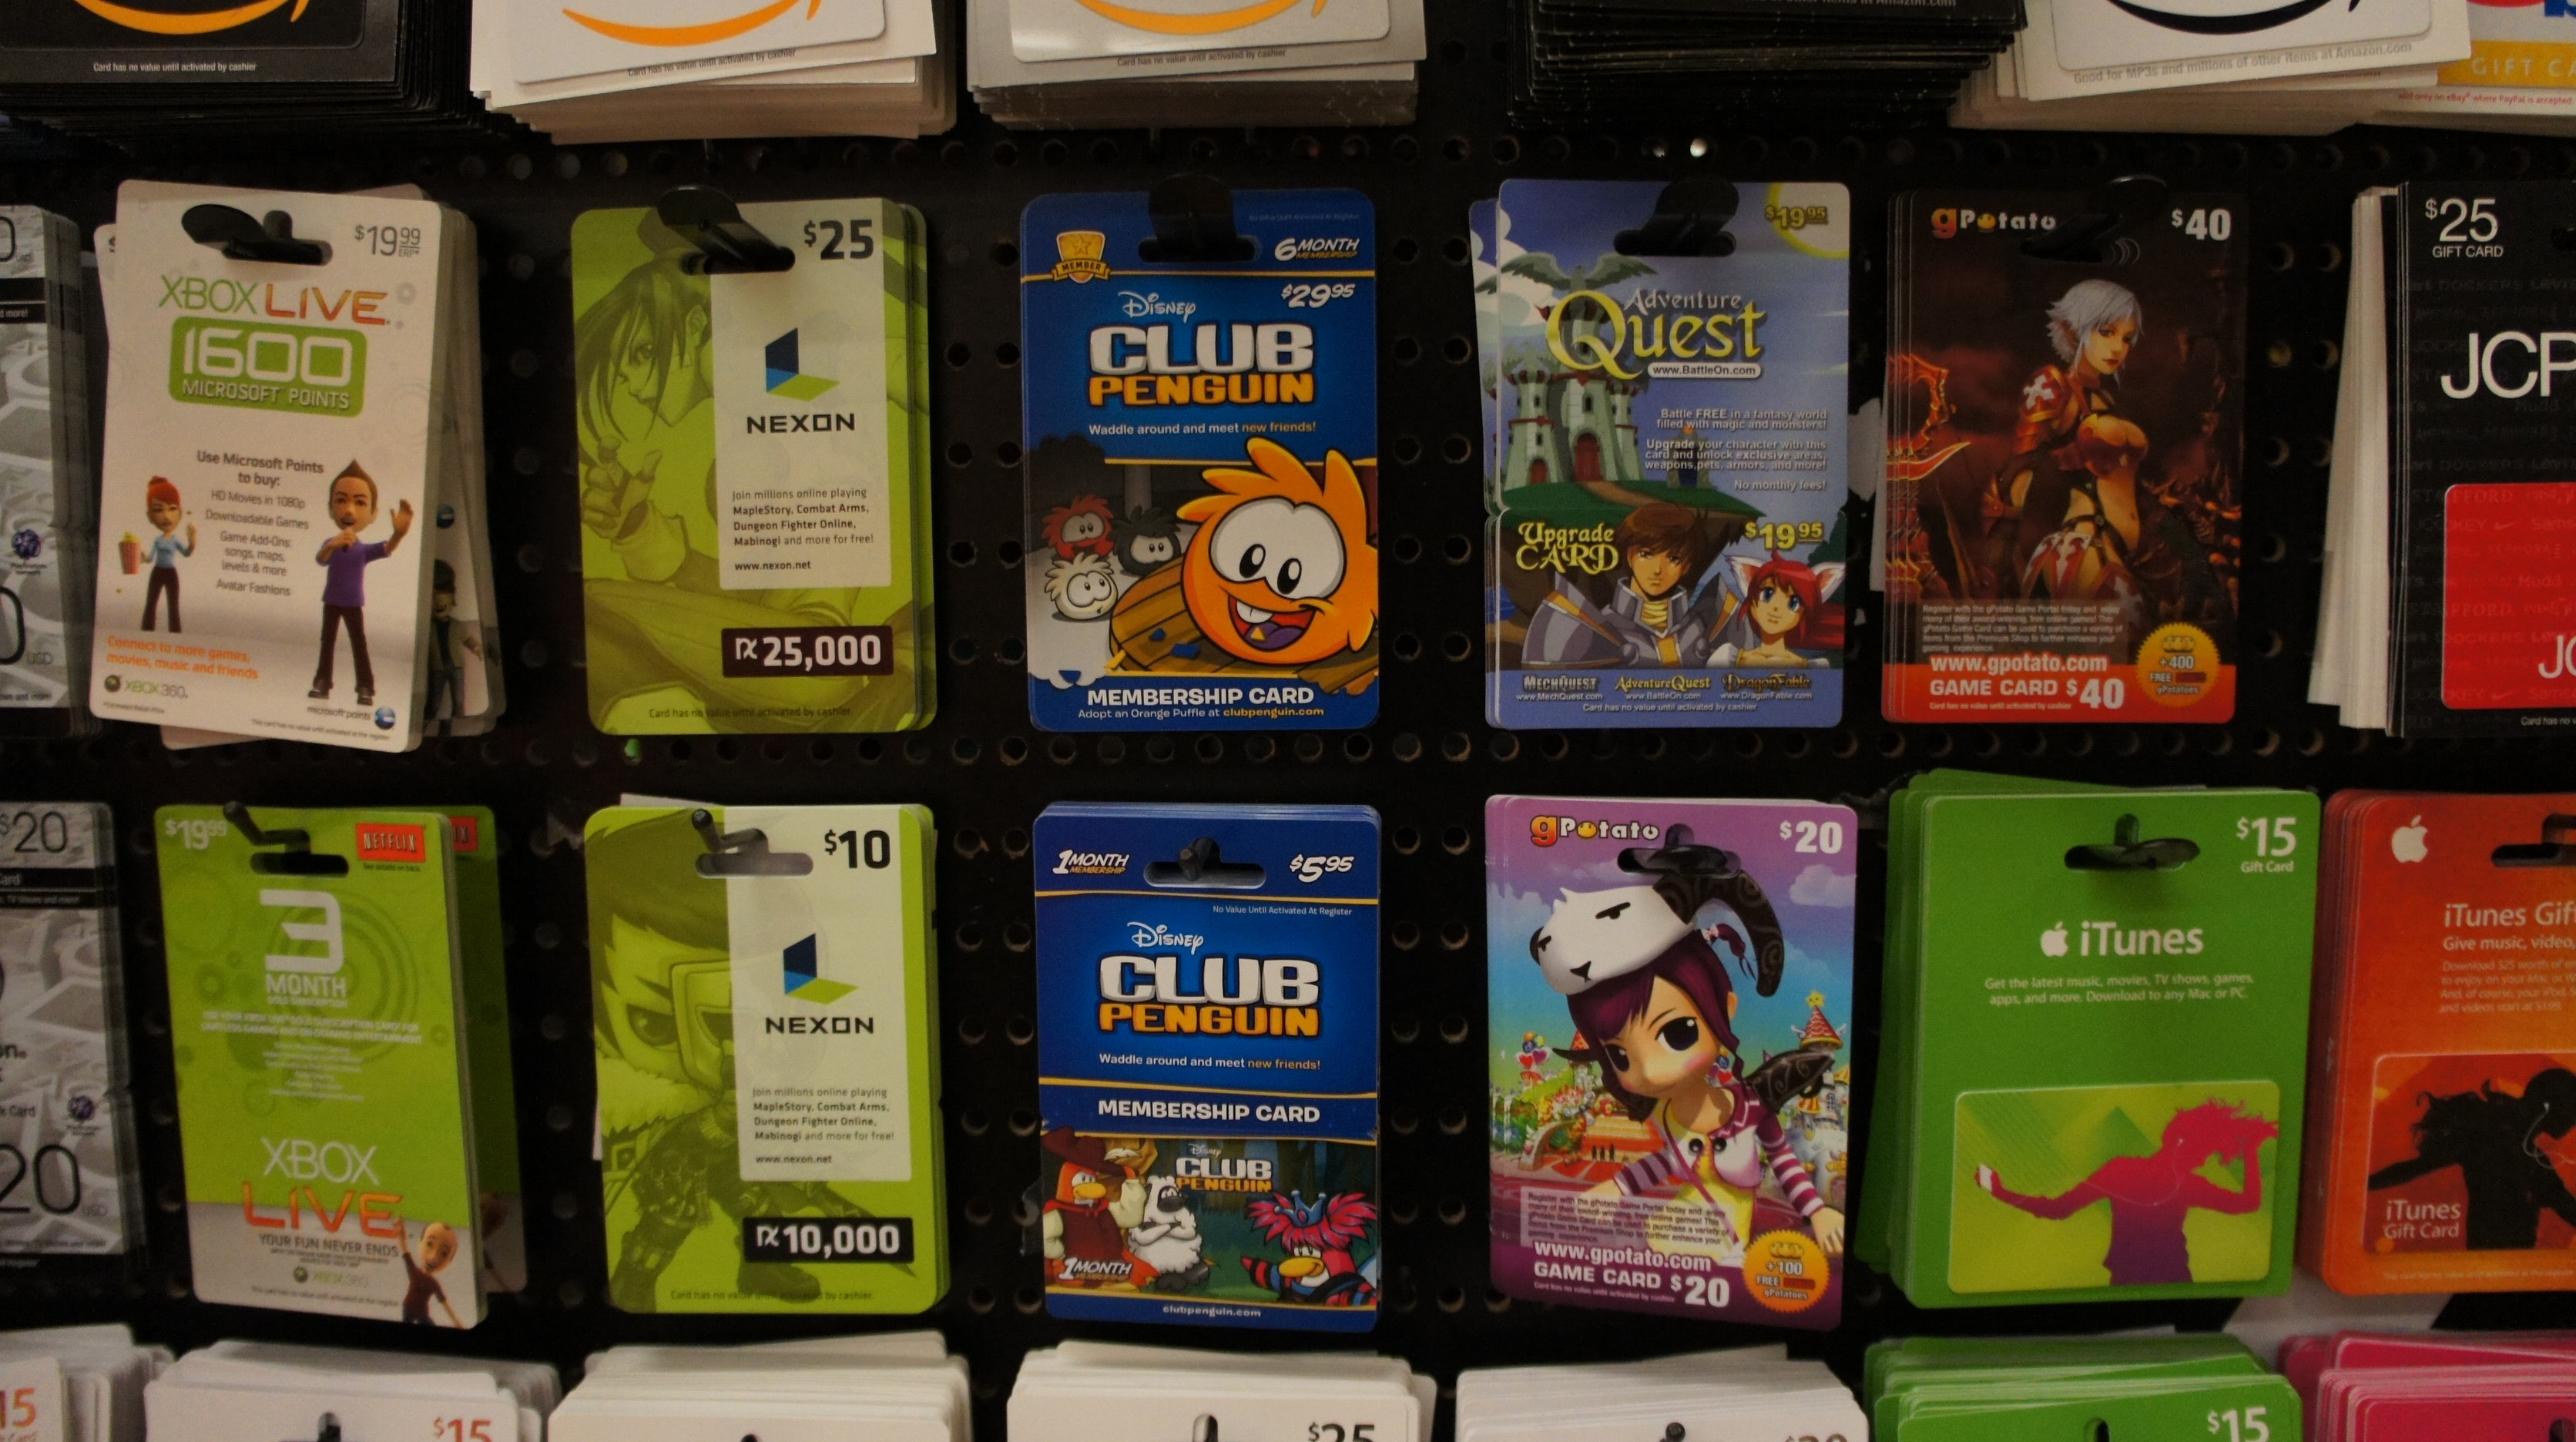 What happens when companies remove expiry dates on gift cards?